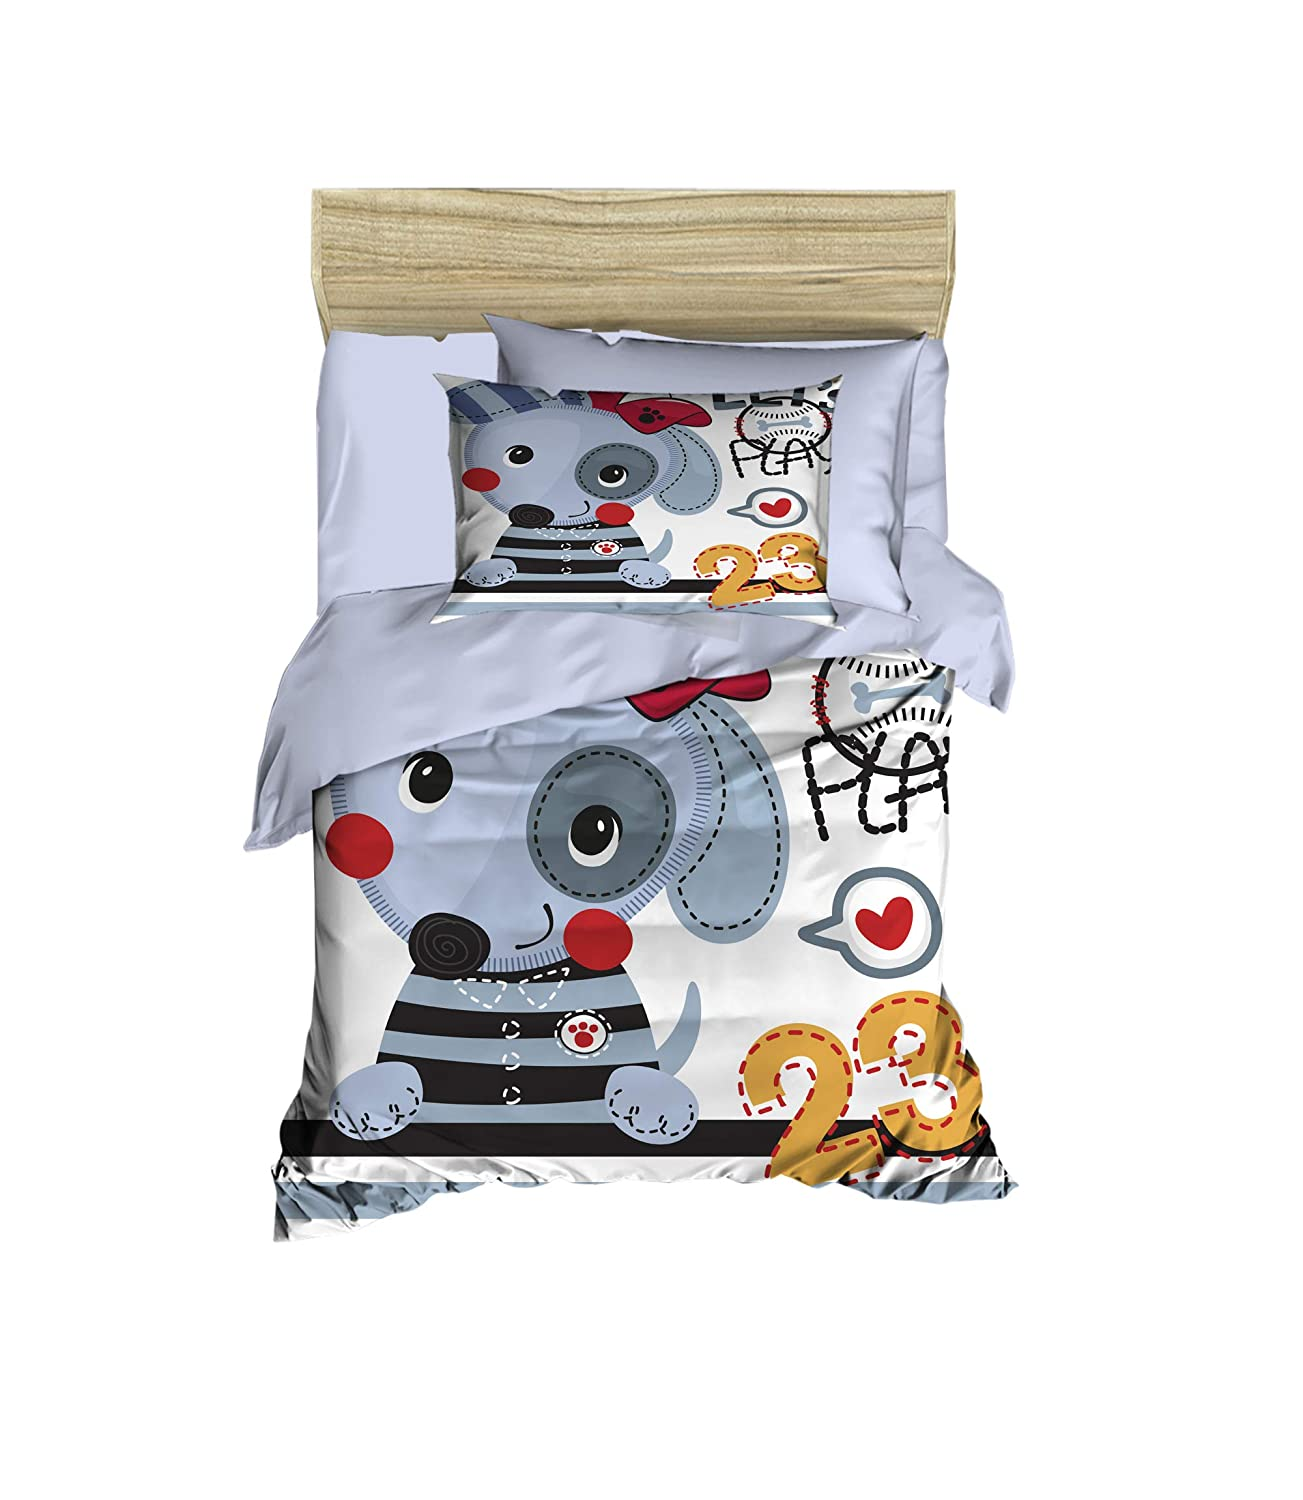 100% Cotton Cute Dog Baby Bedding Let's Play Dog Themed Nursery Baby Bed Set, Toddlers Crib Bedding for Baby Boys and Girls, Duvet Cover Set with Comforter, 5 Pieces